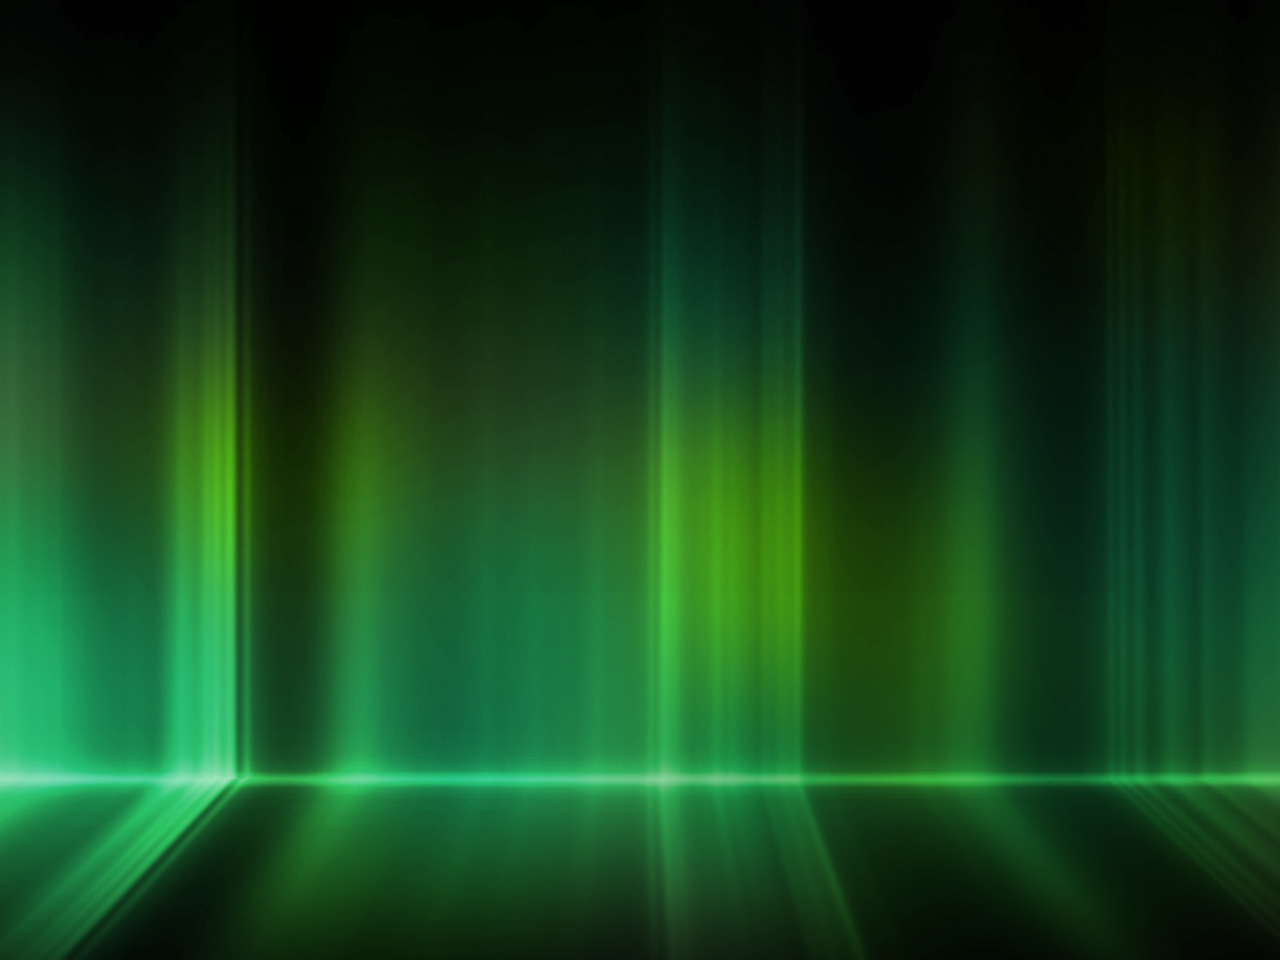 Green And Black Abstract Wallpaper 12 Cool Wallpaper ...